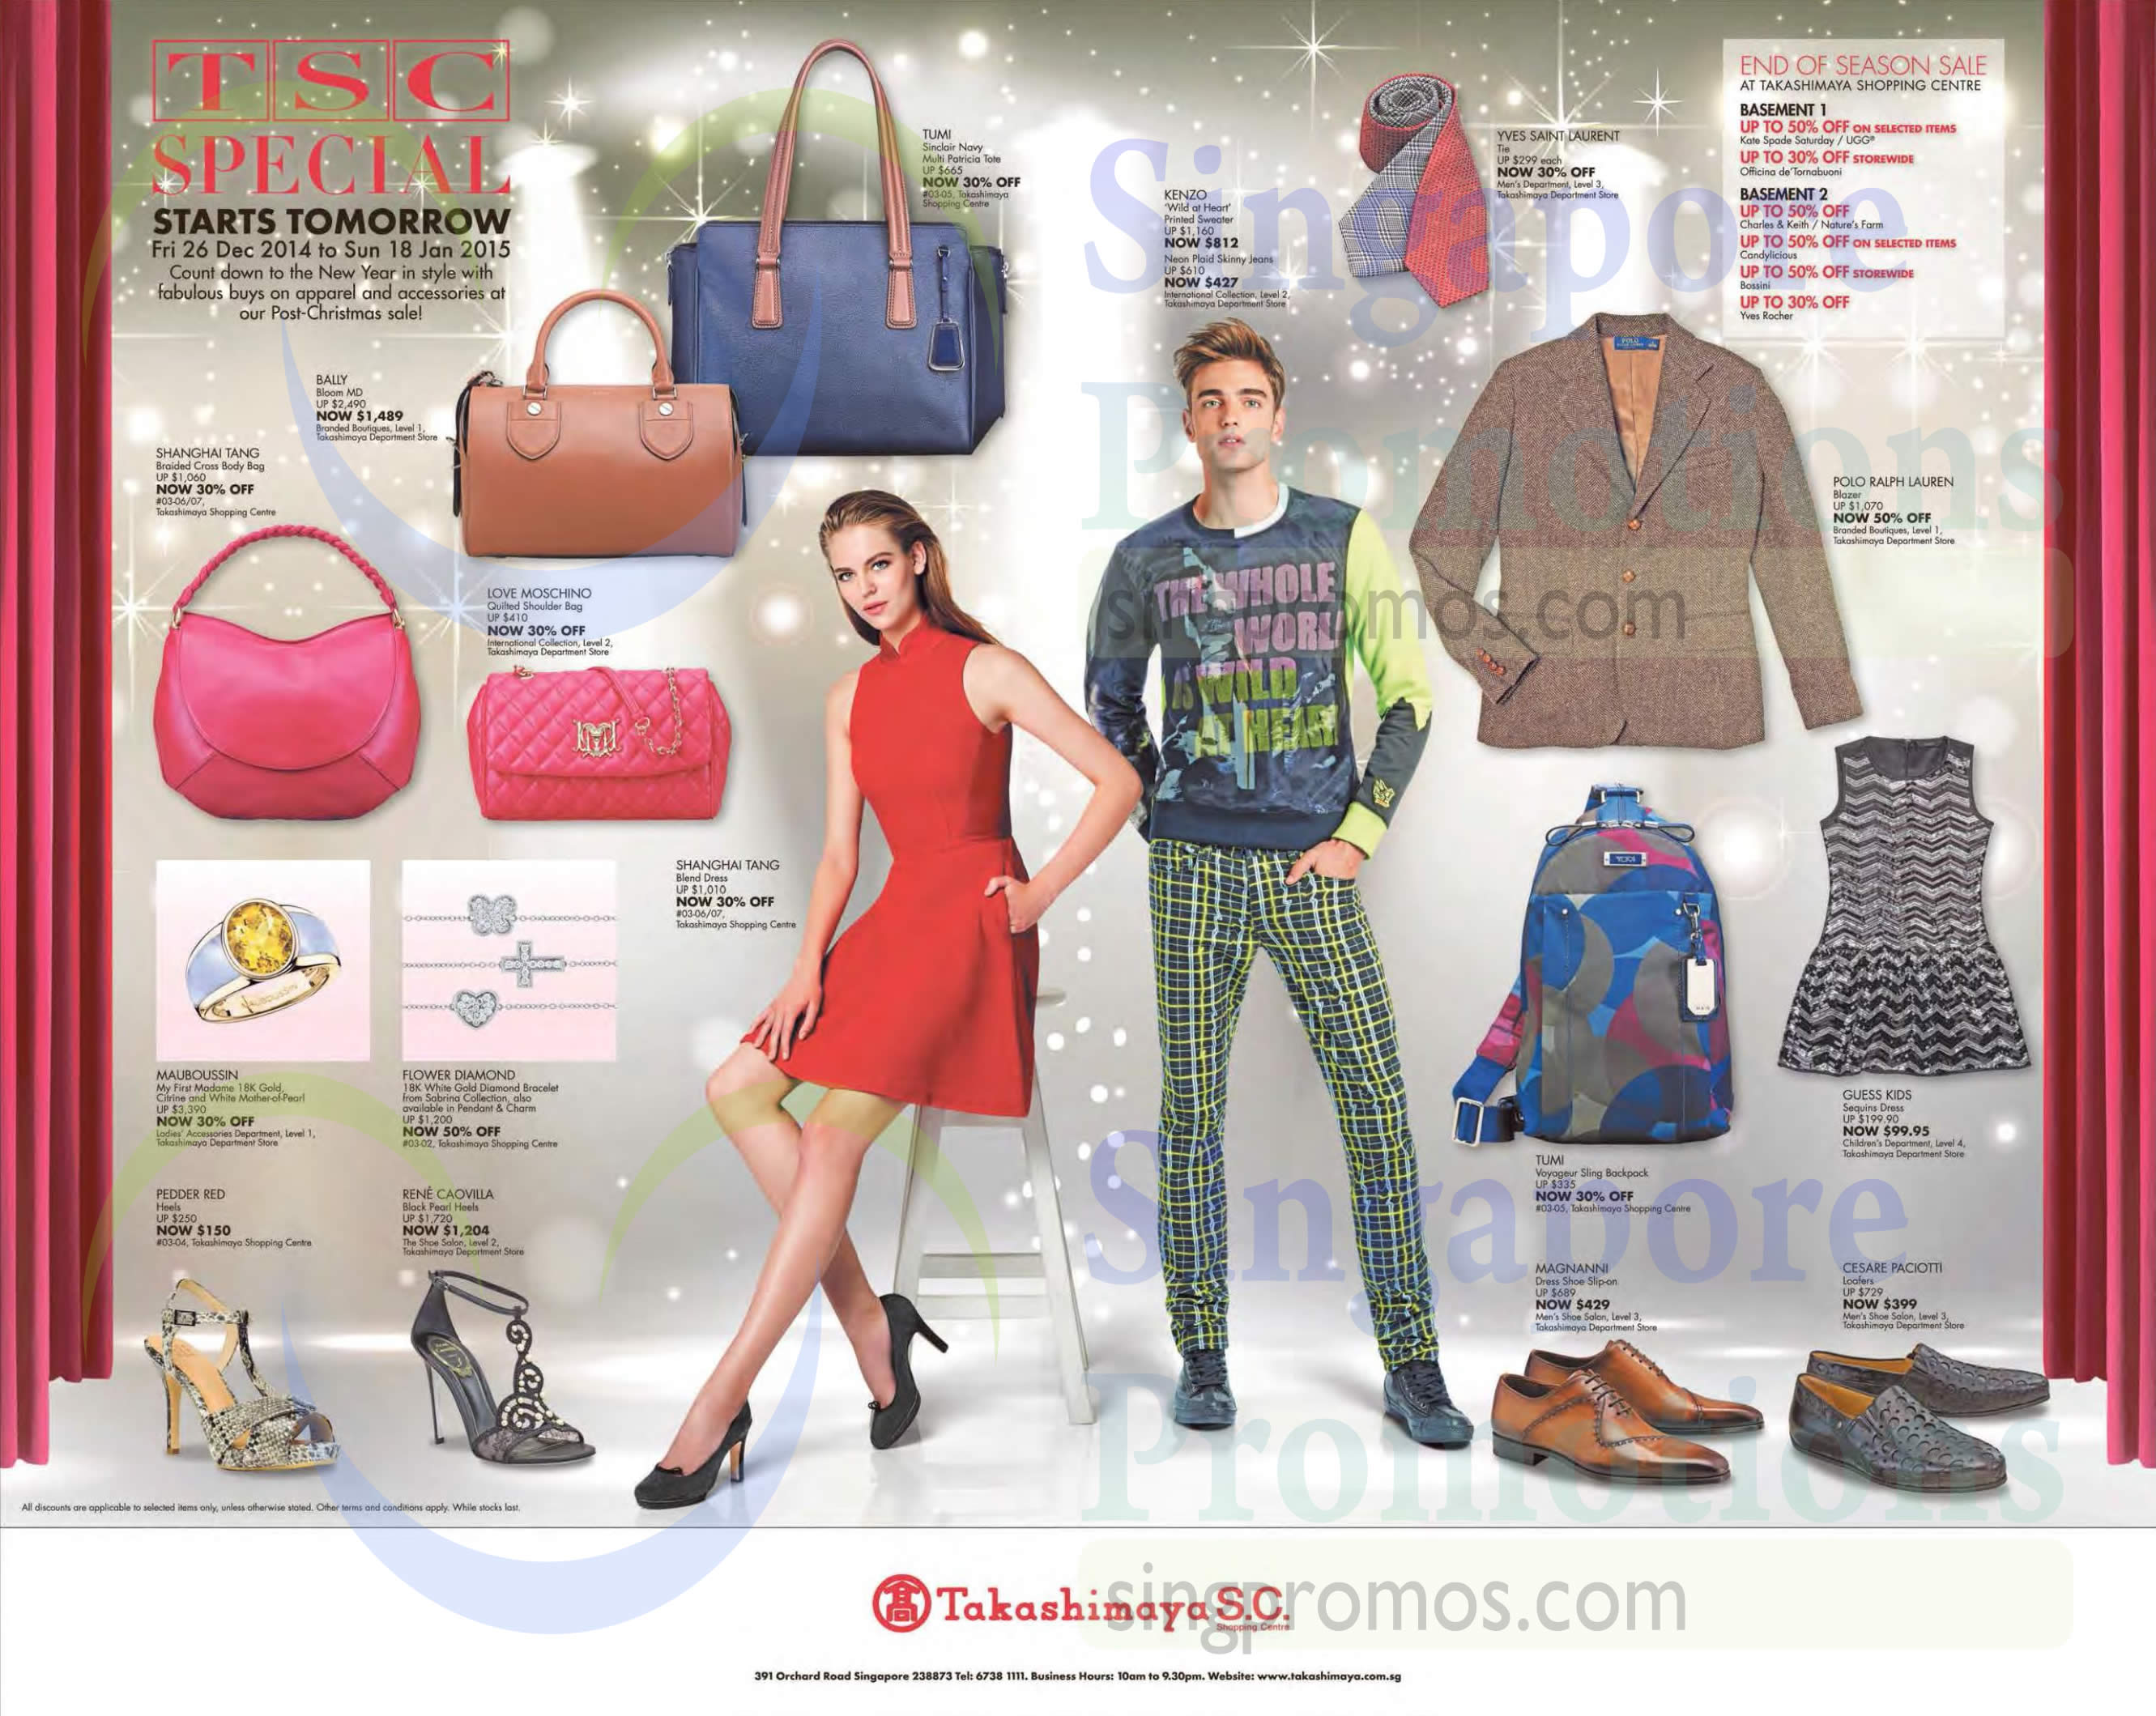 Handbags, Shoes, Sandals, Backpack, Ties, Blazer, Guess, Tumi, Magnanni, Cesare Paciotti, Polo Ralph Lauren, Kenzo, Bally, Pedder Red